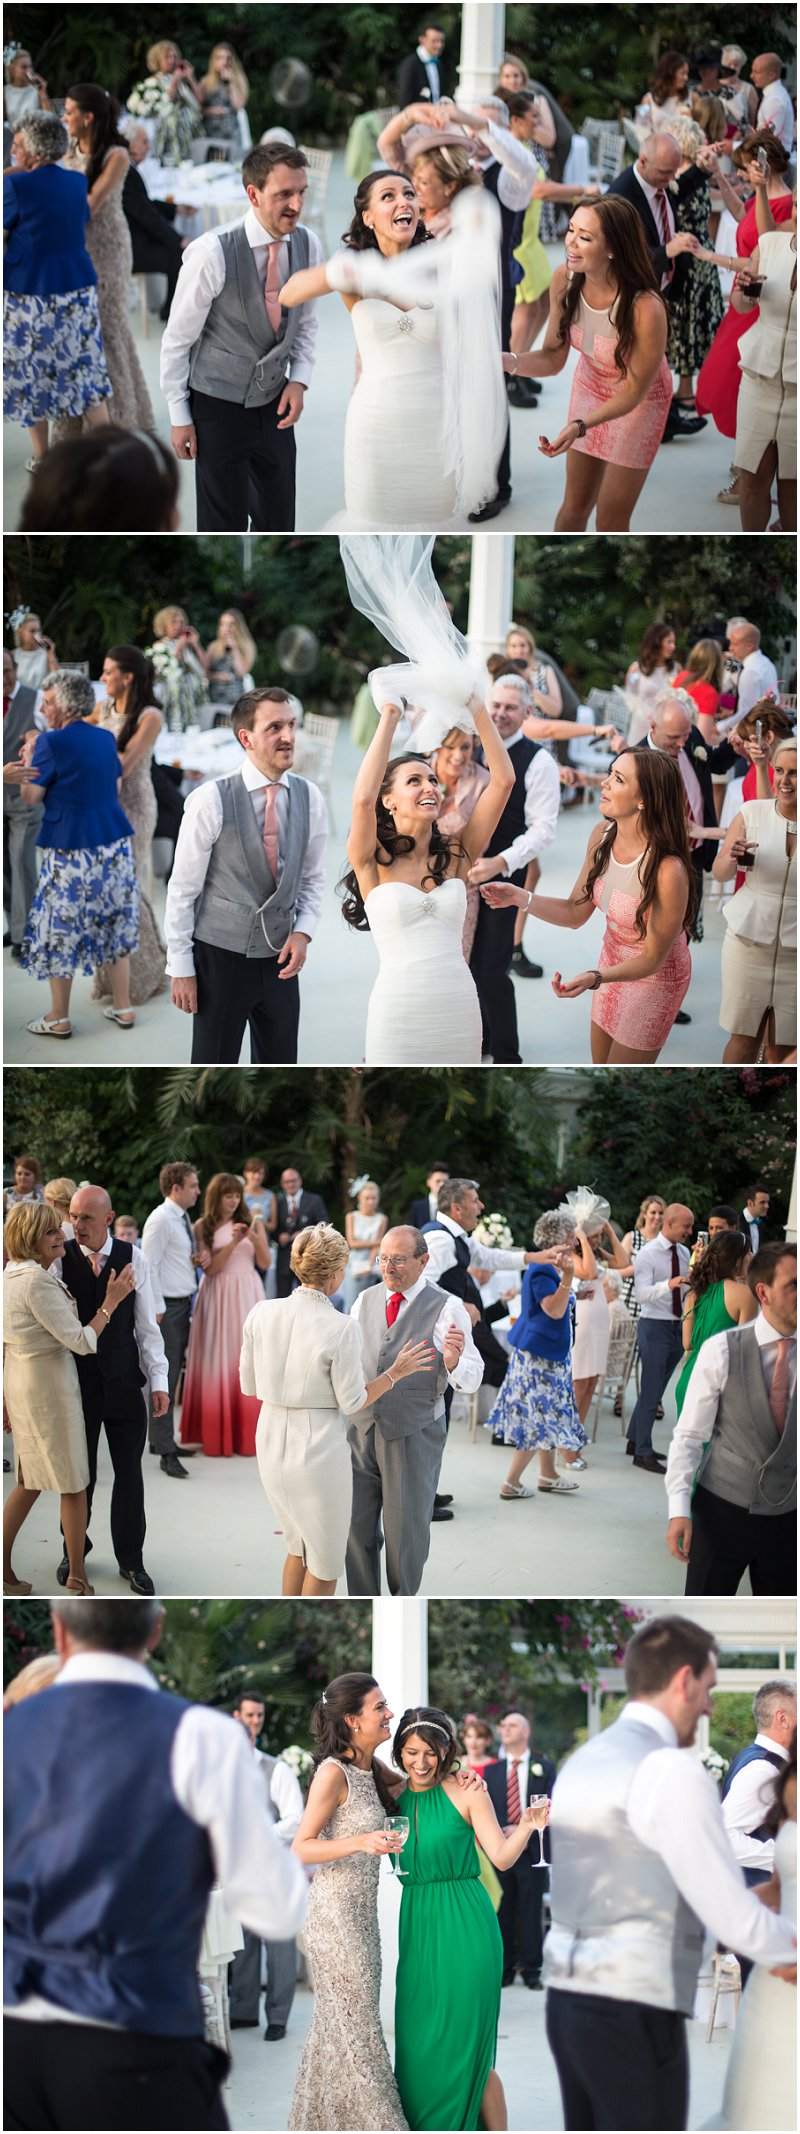 Fun and Natural Pictures at Sefton Palm House Wedding